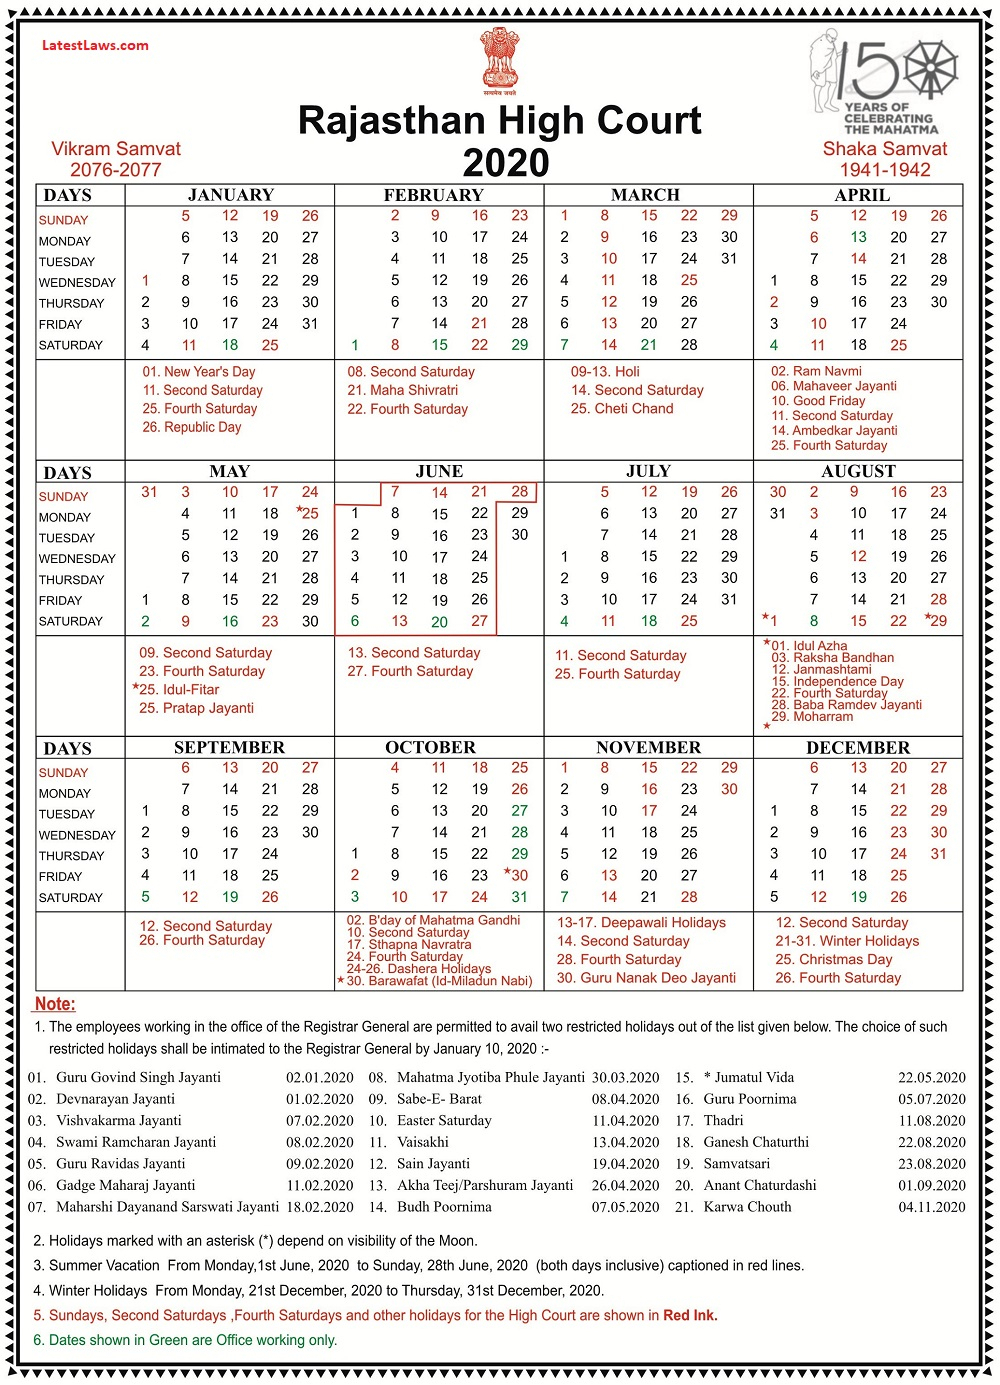 Rajasthan High Court Calendar 2020 with 2020 Bihar Government Calendar